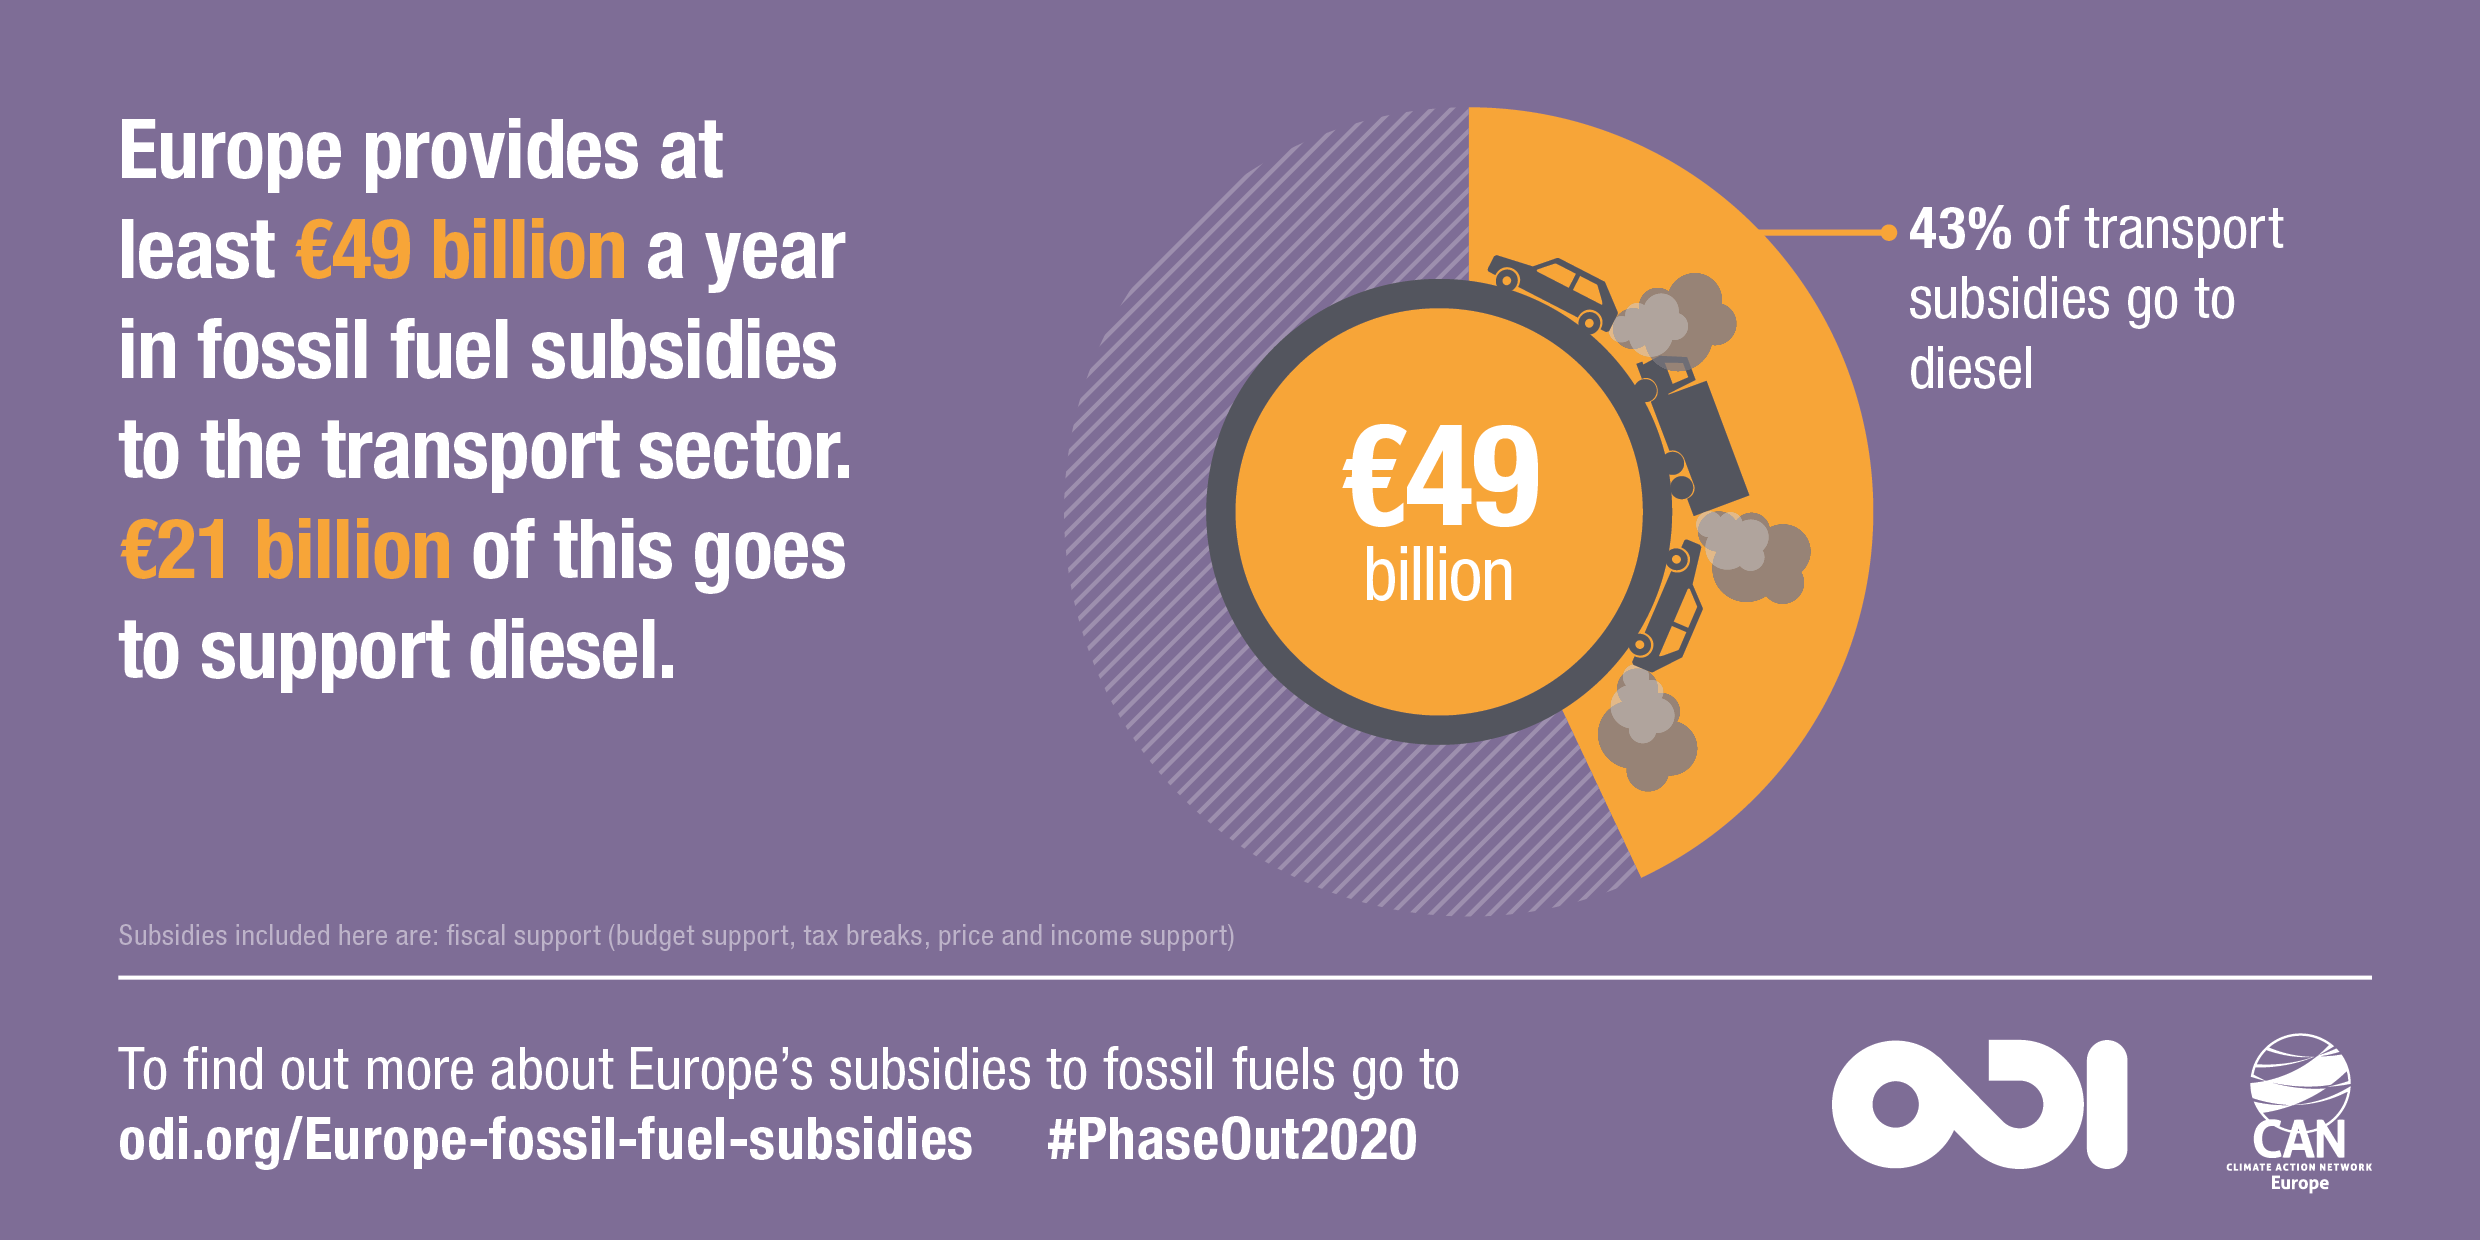 Europe provides at least €49 billion a year in fossil fuel subsidies to the transport sector. €21 billion of this goes to support diesel. Image: Overseas Development Institute